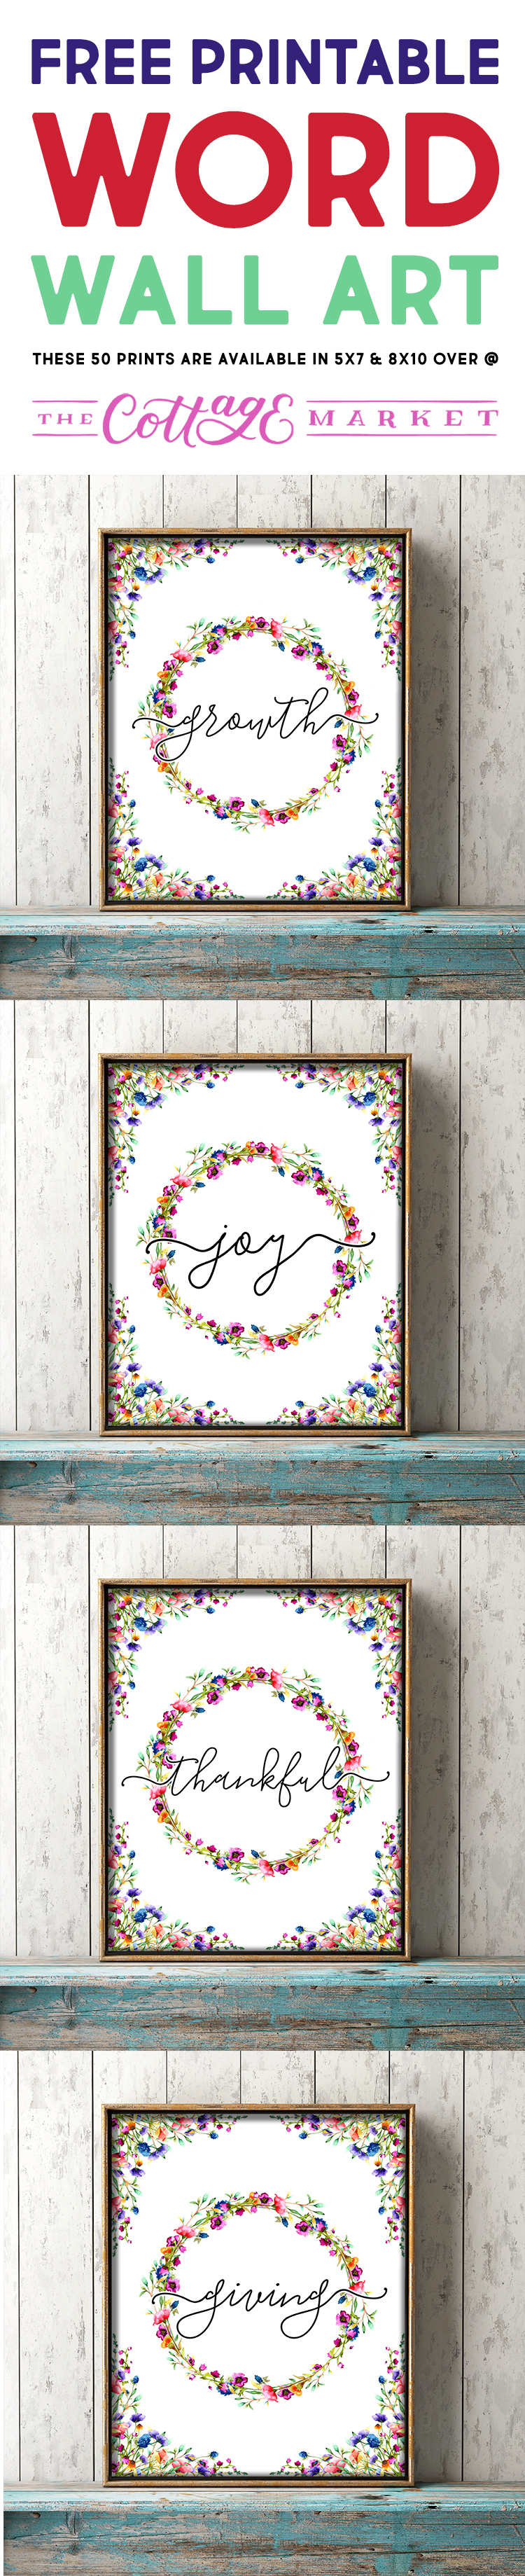 Free Printable Word Wall Art What\u0027s Your Word Of The Year?